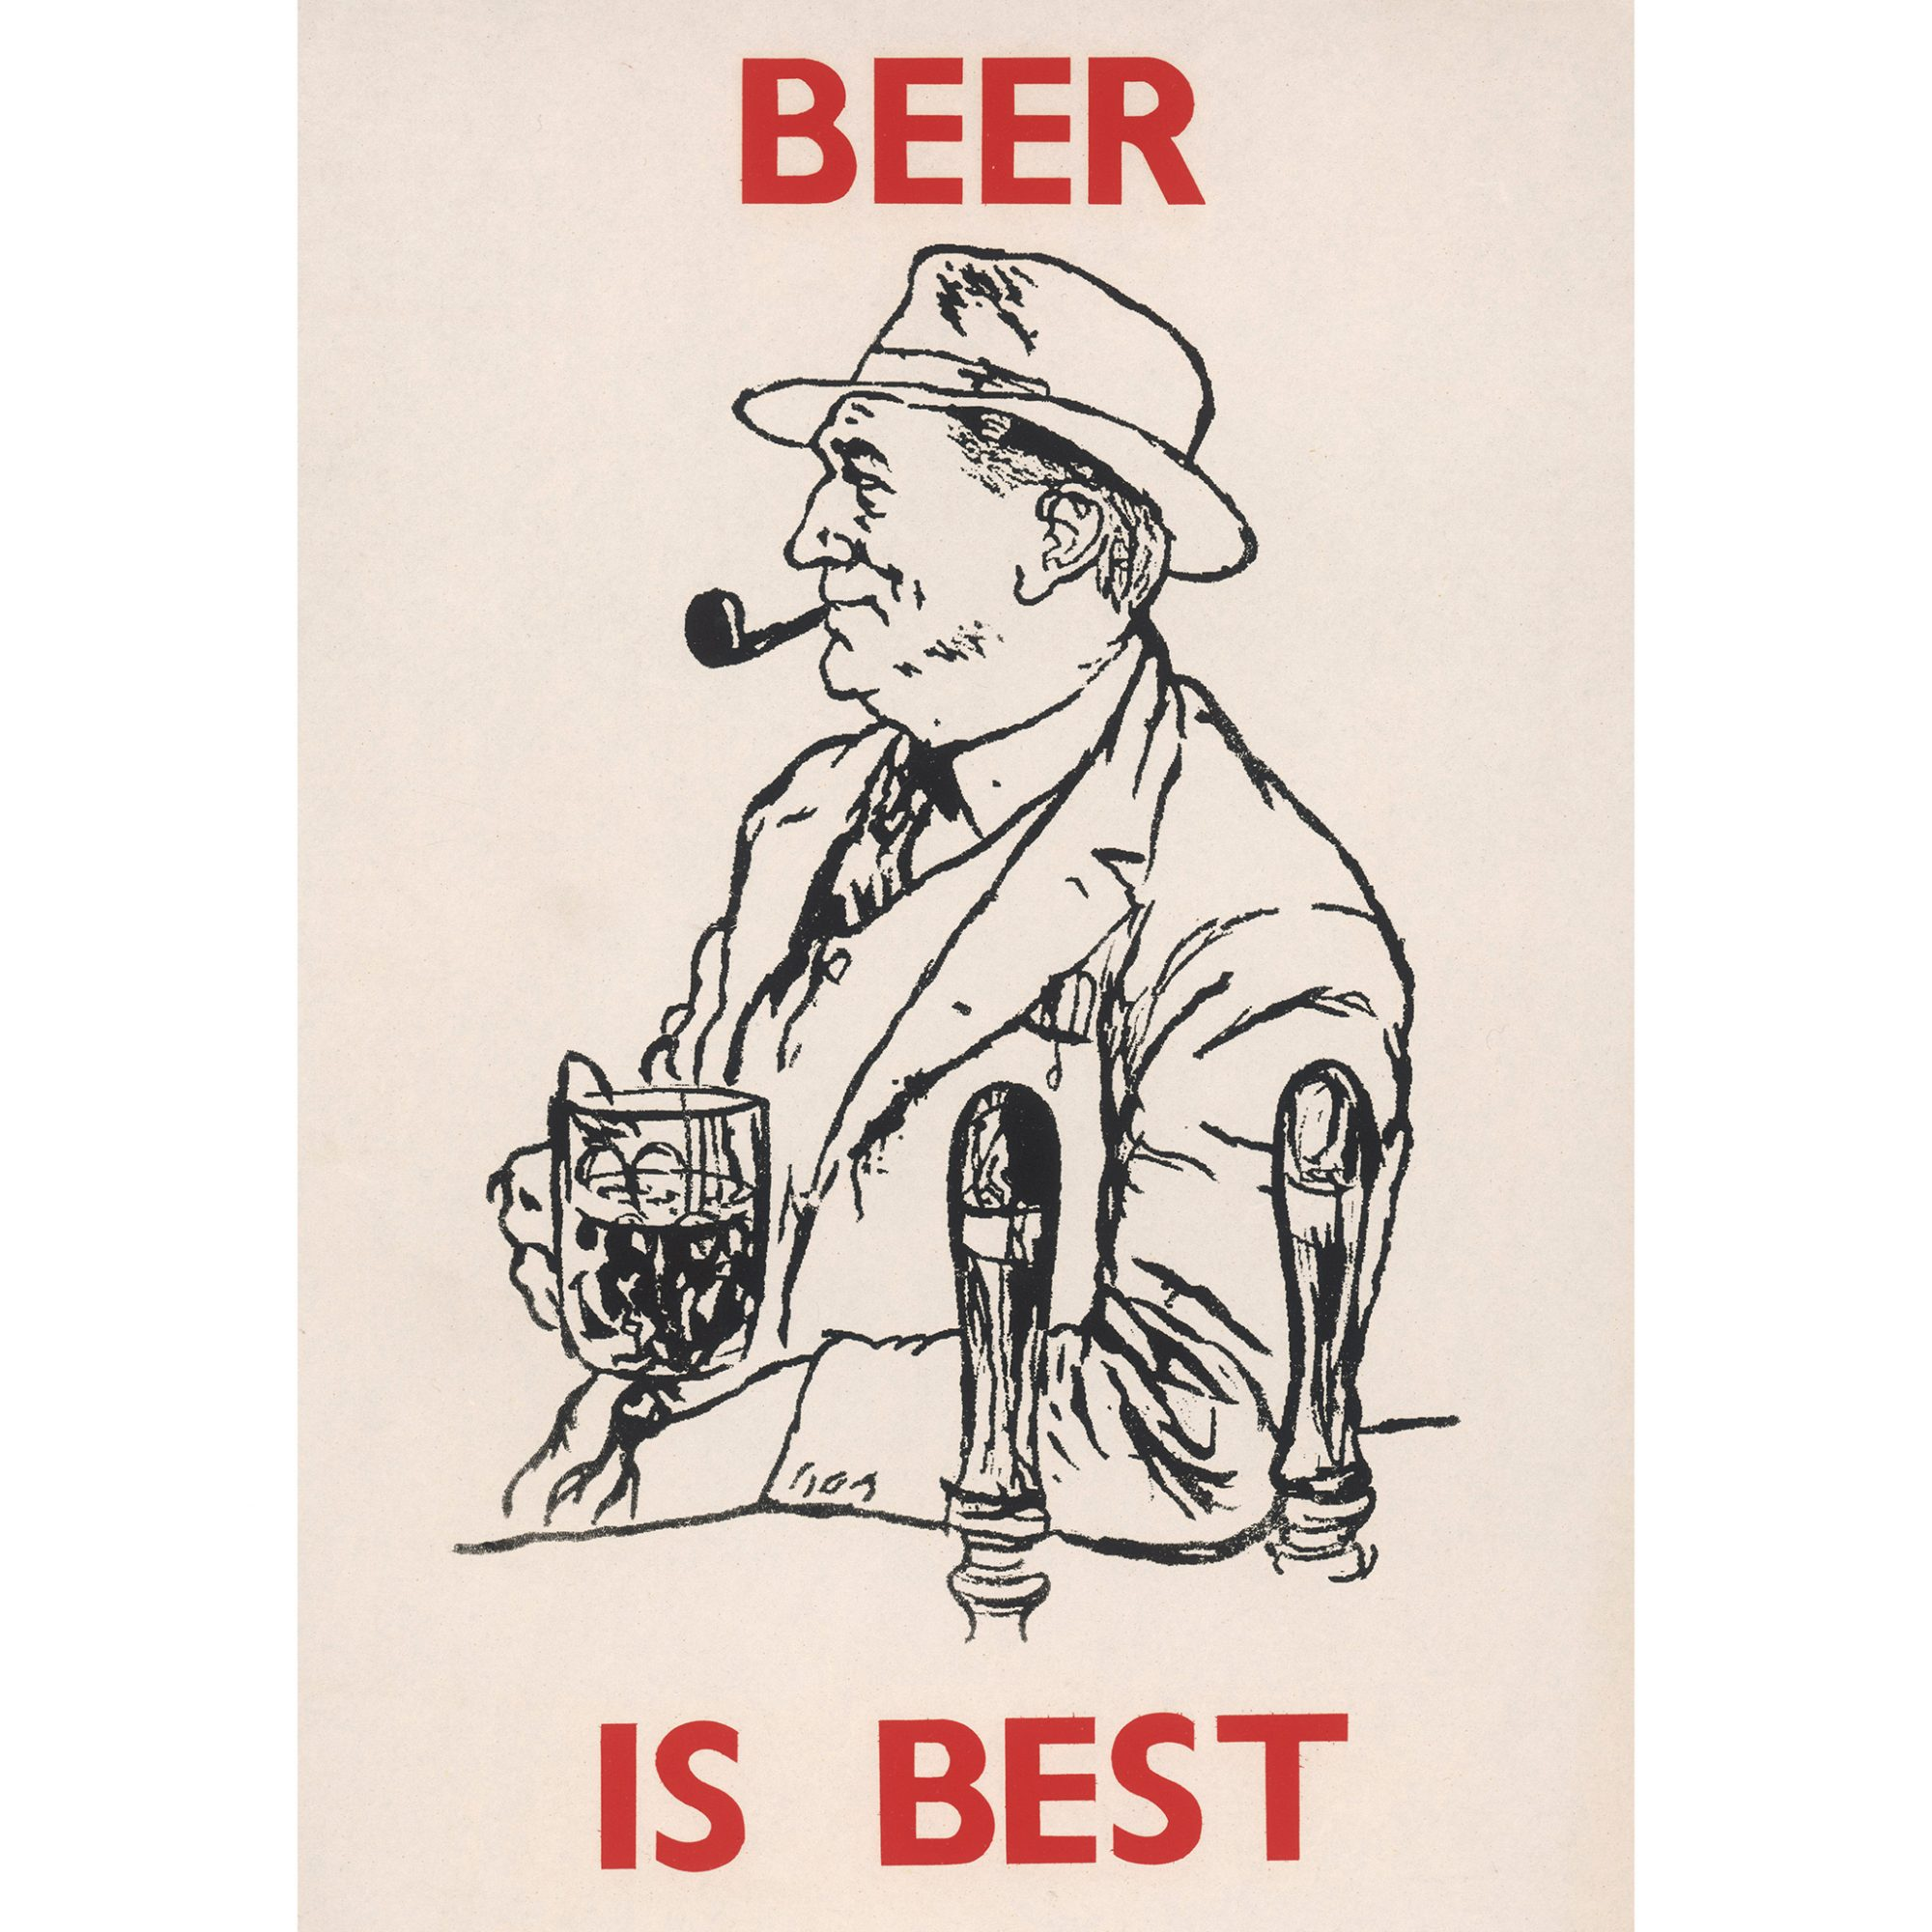 Beer Snobs Think They Are Healthier Than the Rest of Us